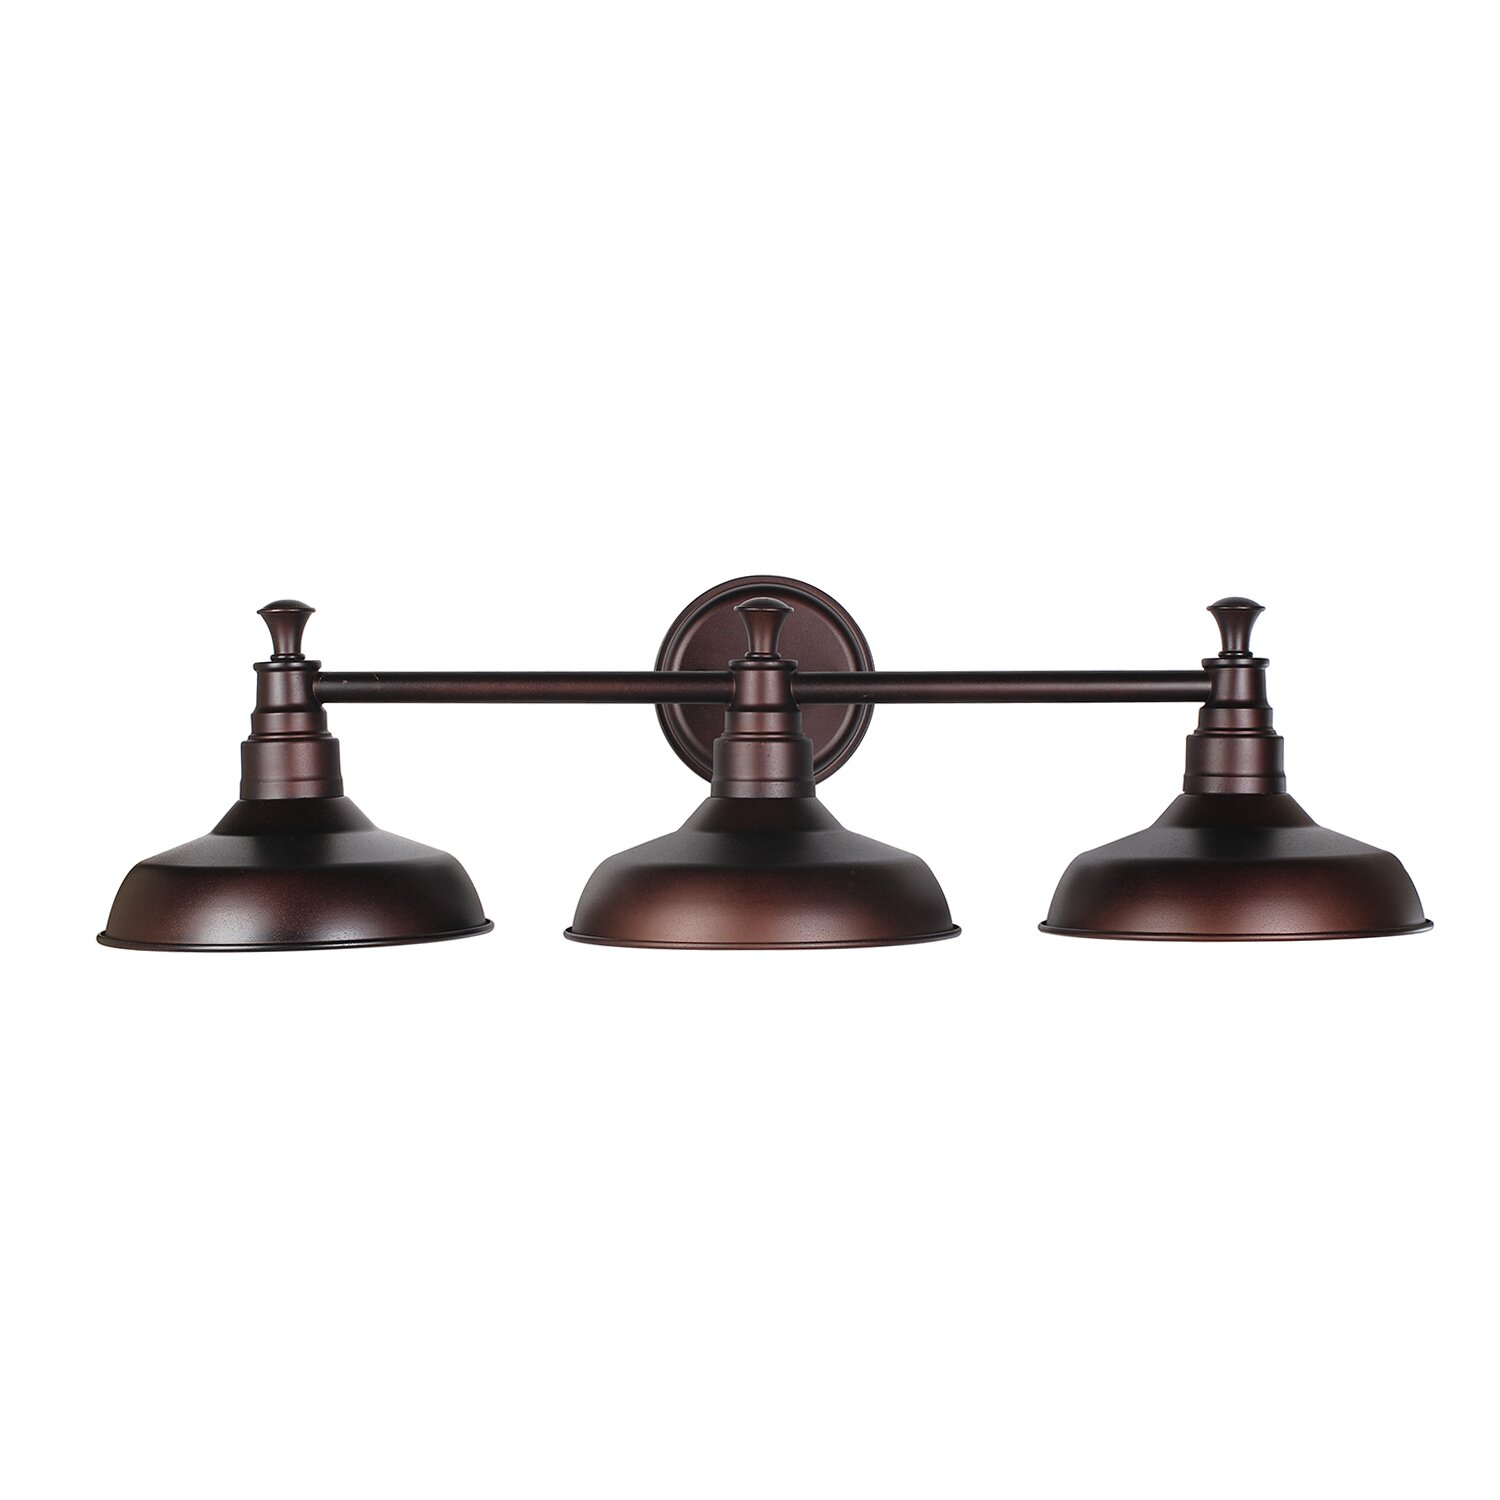 Design House Kimball 3 Light Bath Vanity Lights & Reviews | Wayfair